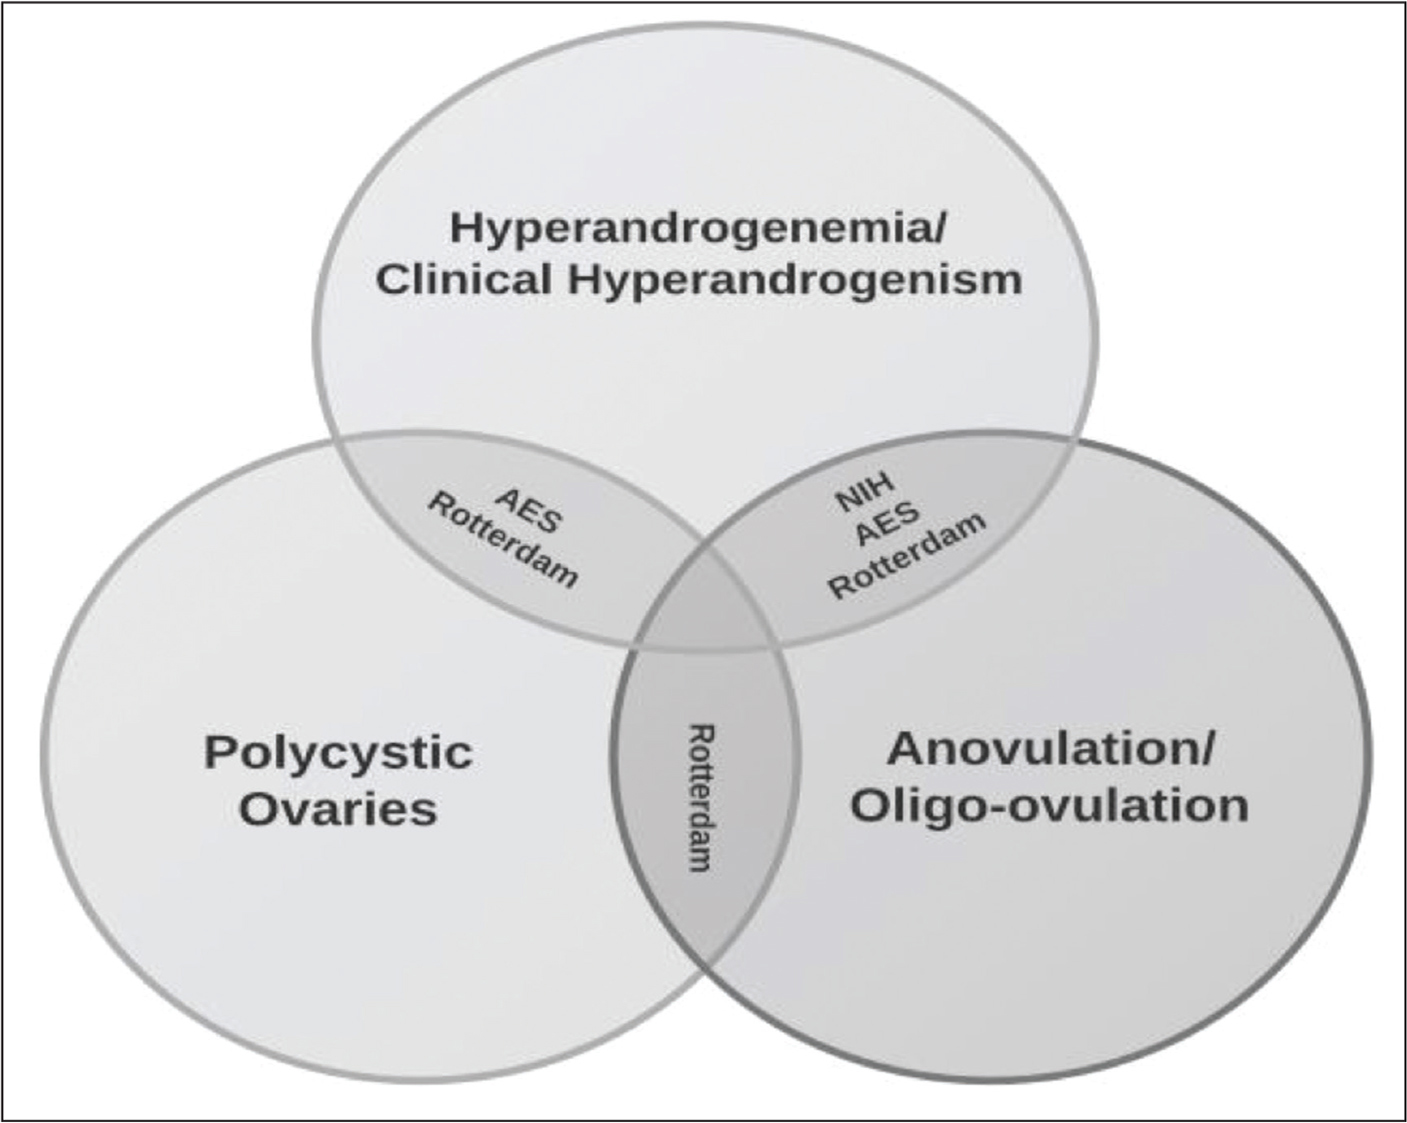 Venn diagram depicting the overlapping relationship between the consensus recommendations for diagnosis of polycystic ovary syndrome. AES, Androgen Excess Society; NIH, National Institutes of Health.